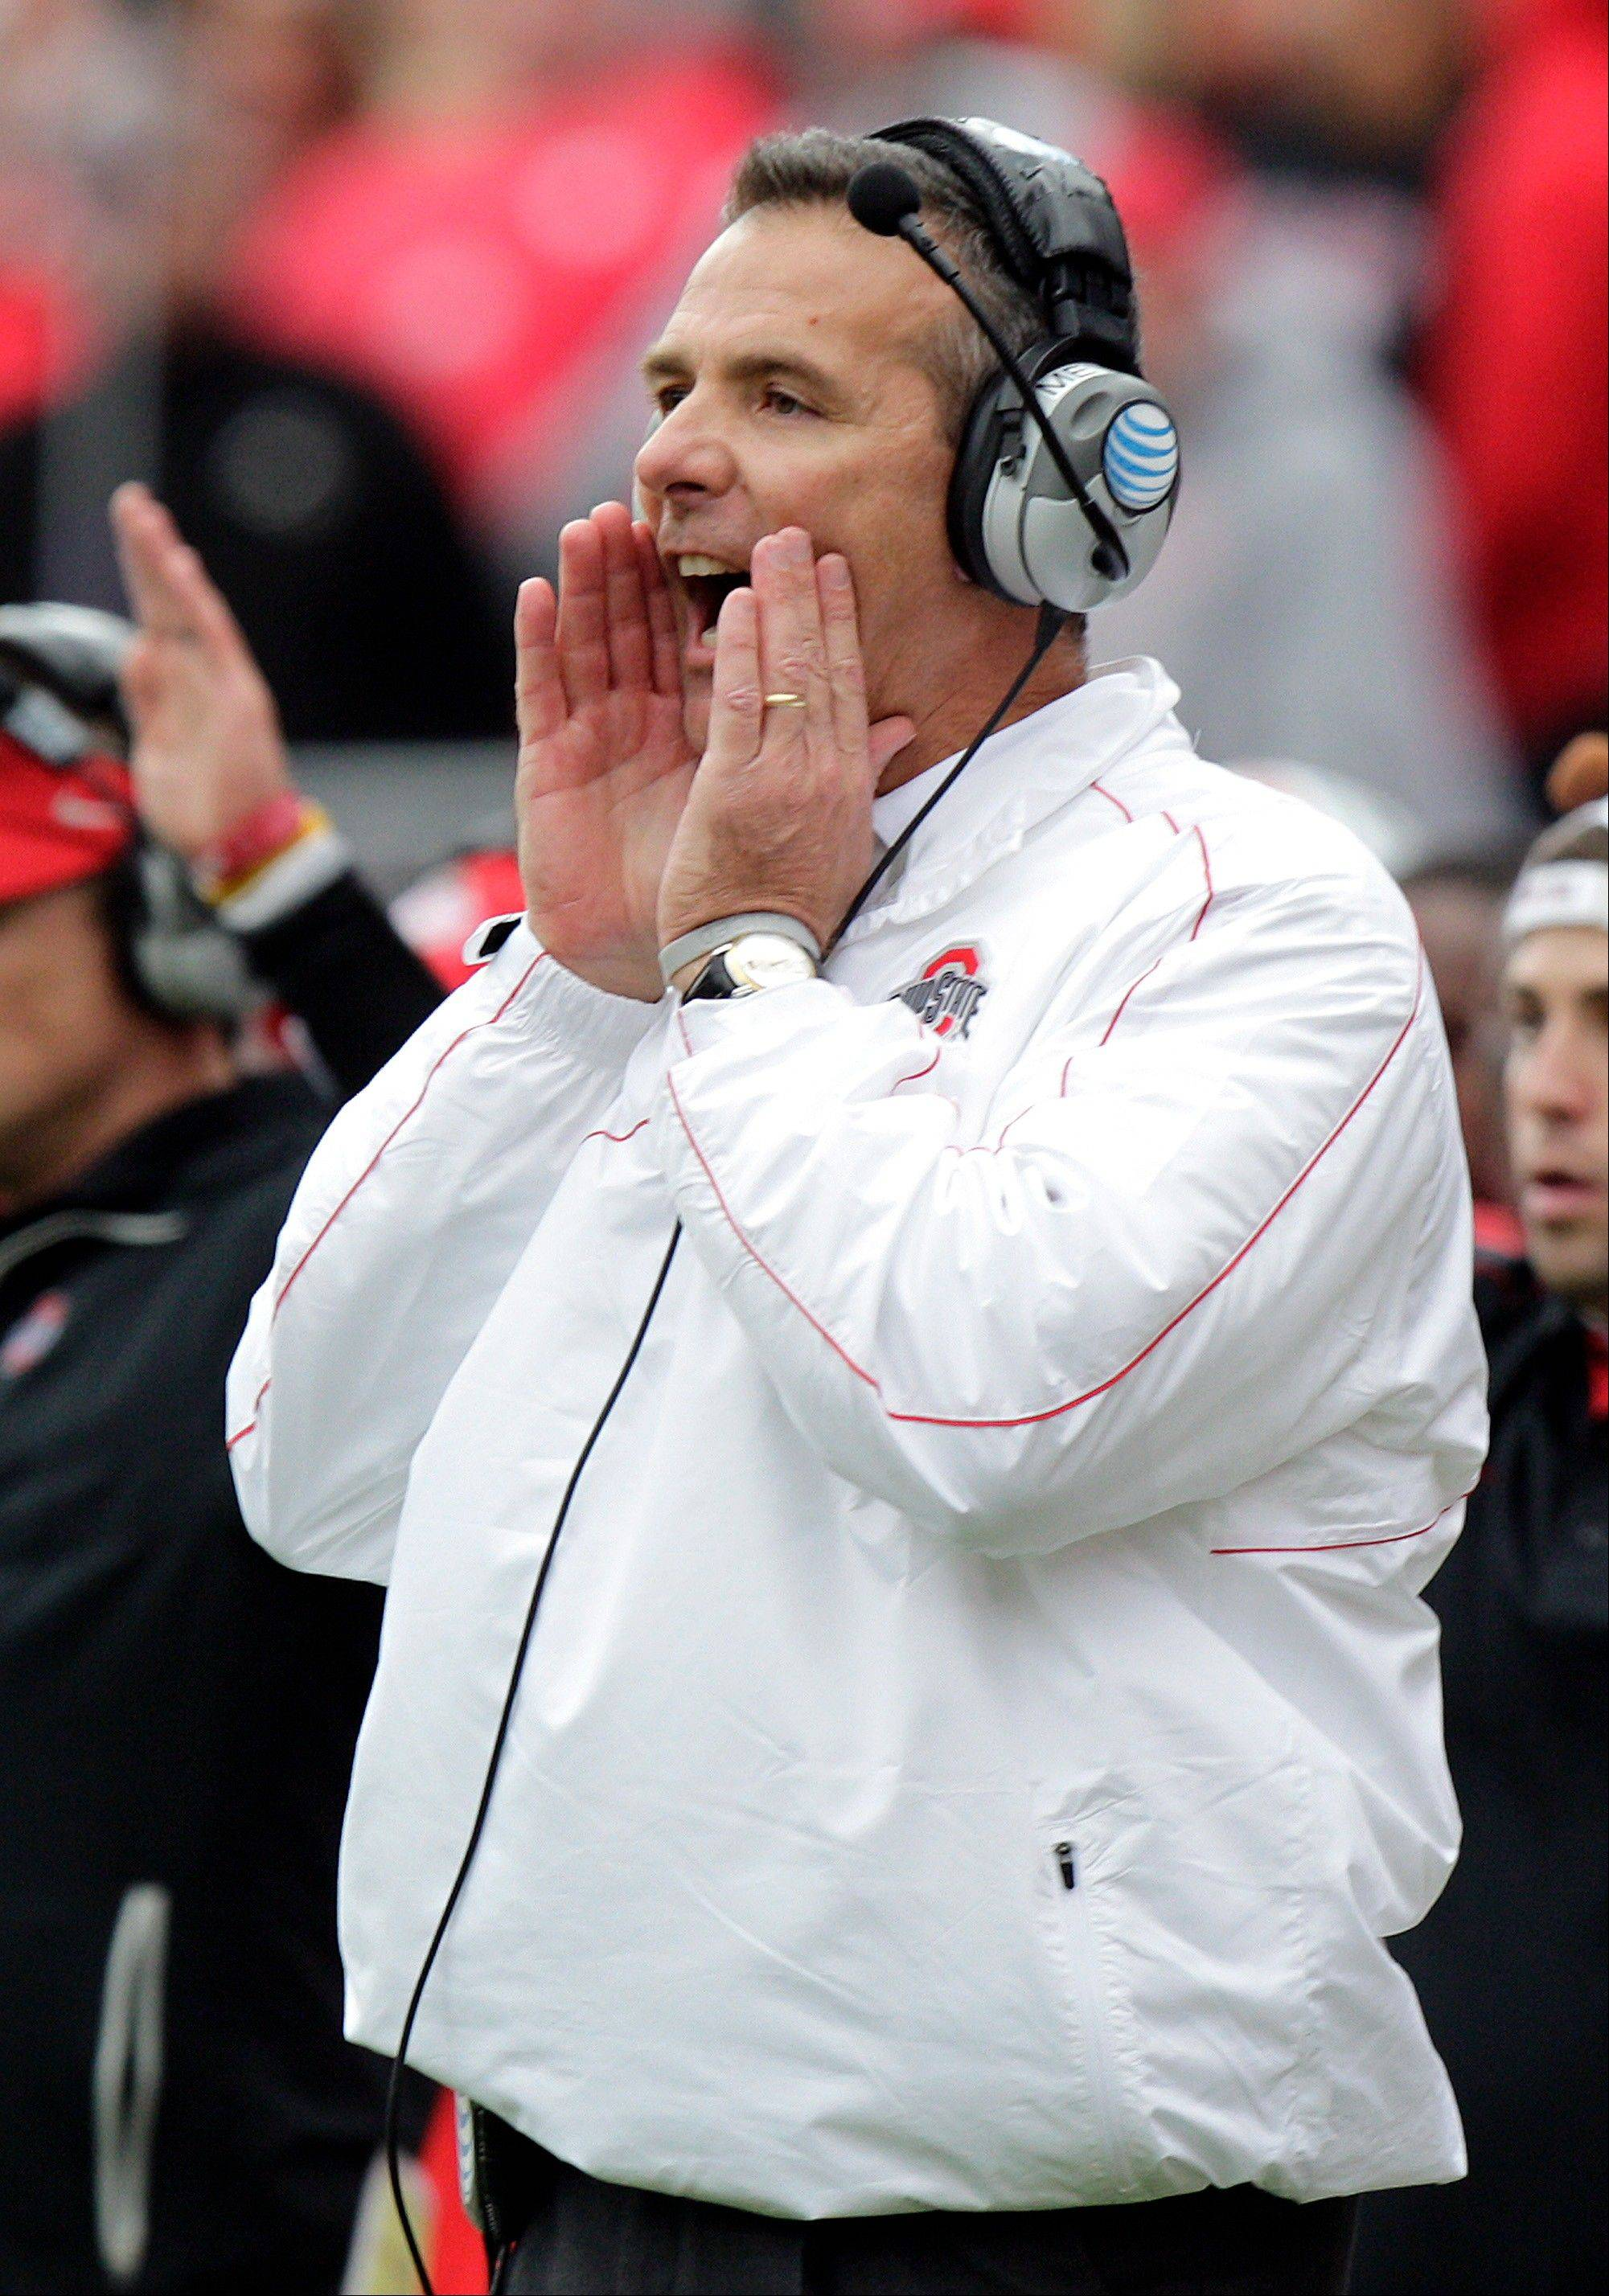 Ohio State head coach Urban Meyer coaches against Purdue Saturday in Columbus, Ohio. Ohio State defeated Purdue 29-22 in overtime.